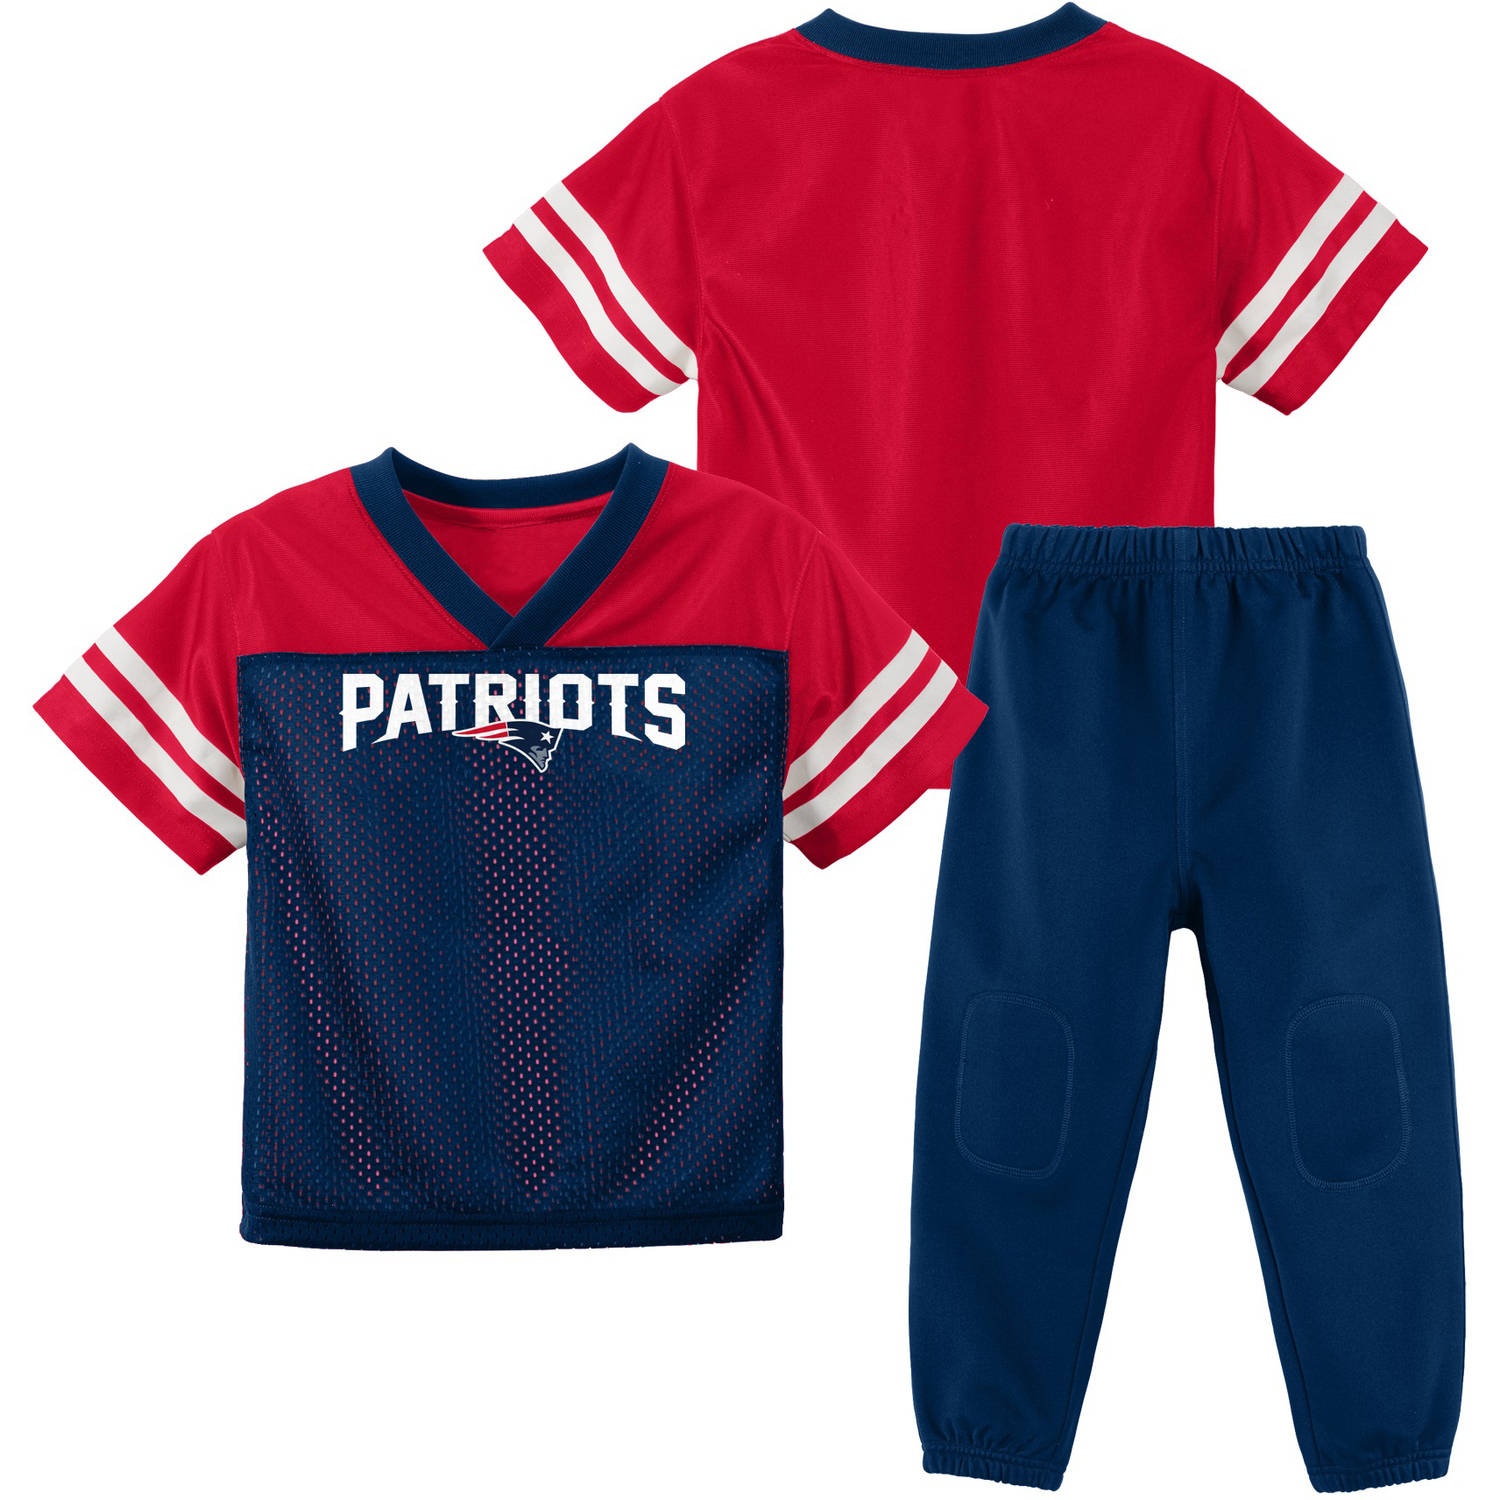 NFL New England Patriots Toddler Short Sleeve Top and Pant Set